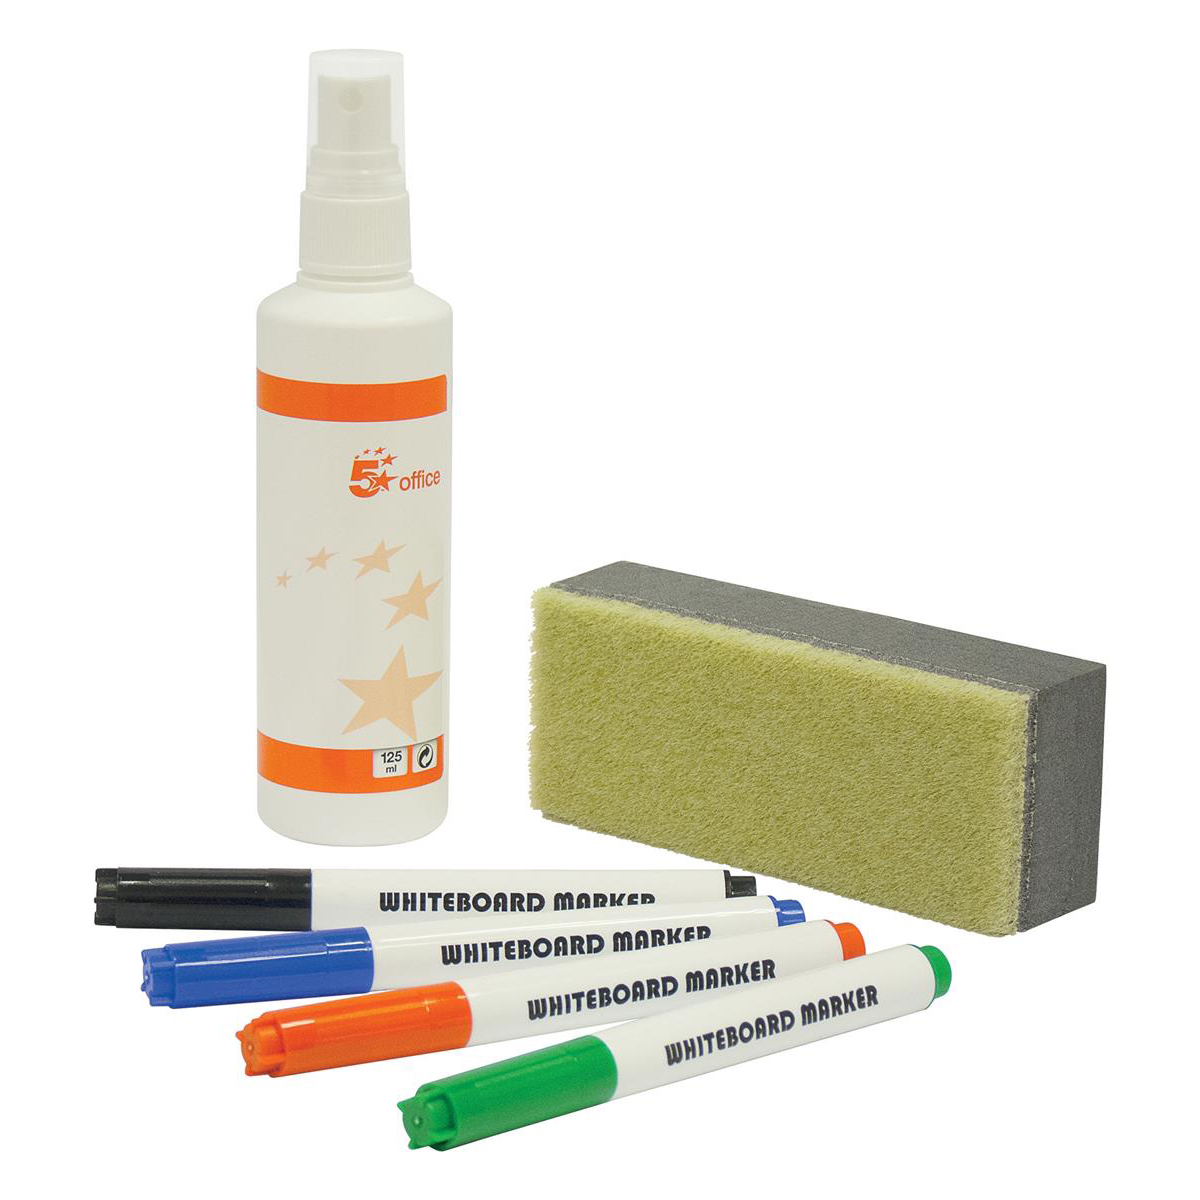 Starter Kits 5 Star Office Drywipe Starter Kit 4 Asst Whiteboard Markers/Eraser/125ml Whiteboard Cleaning Fluid Spray